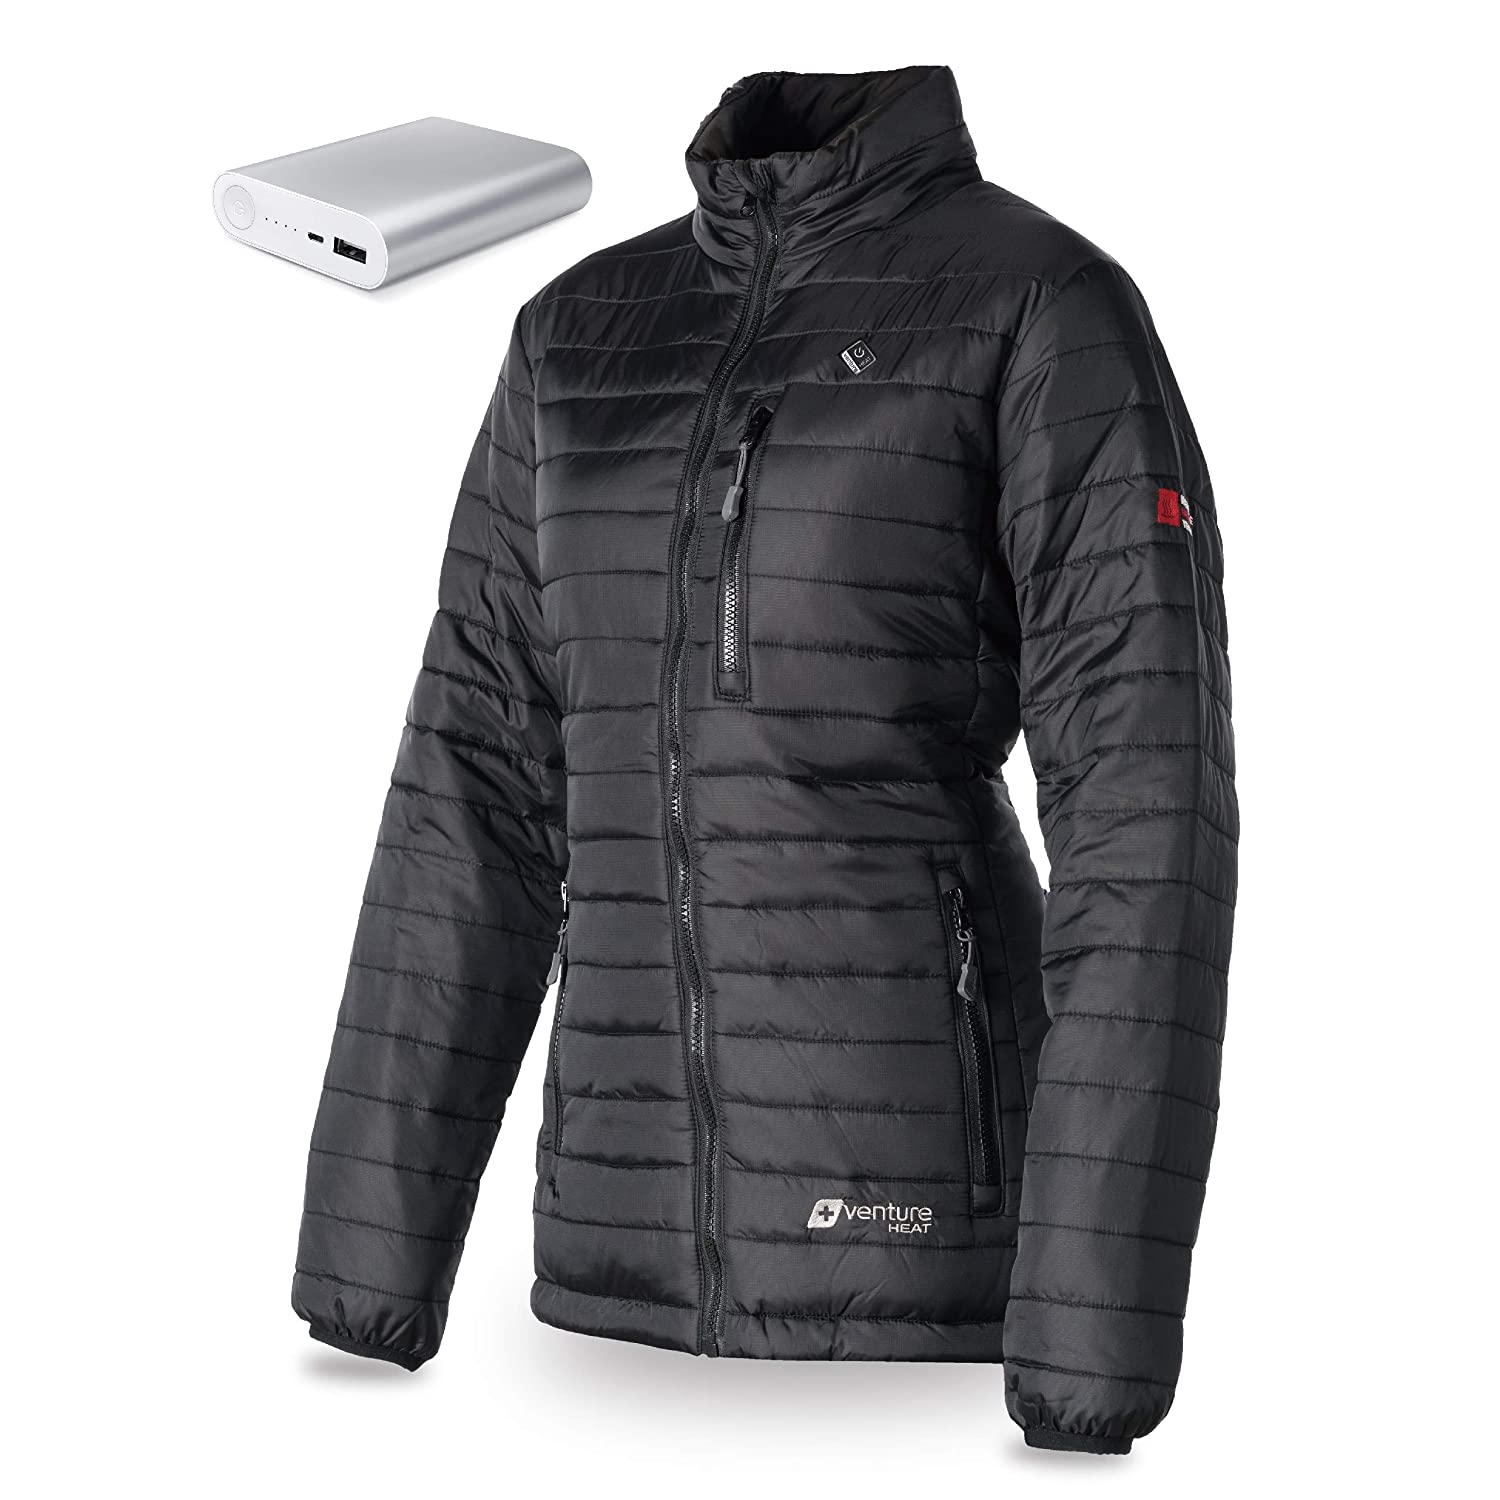 Battery Heated Clothing >> Amazon Com Venture Heat Women S Heated Jacket With Battery 12 Hour